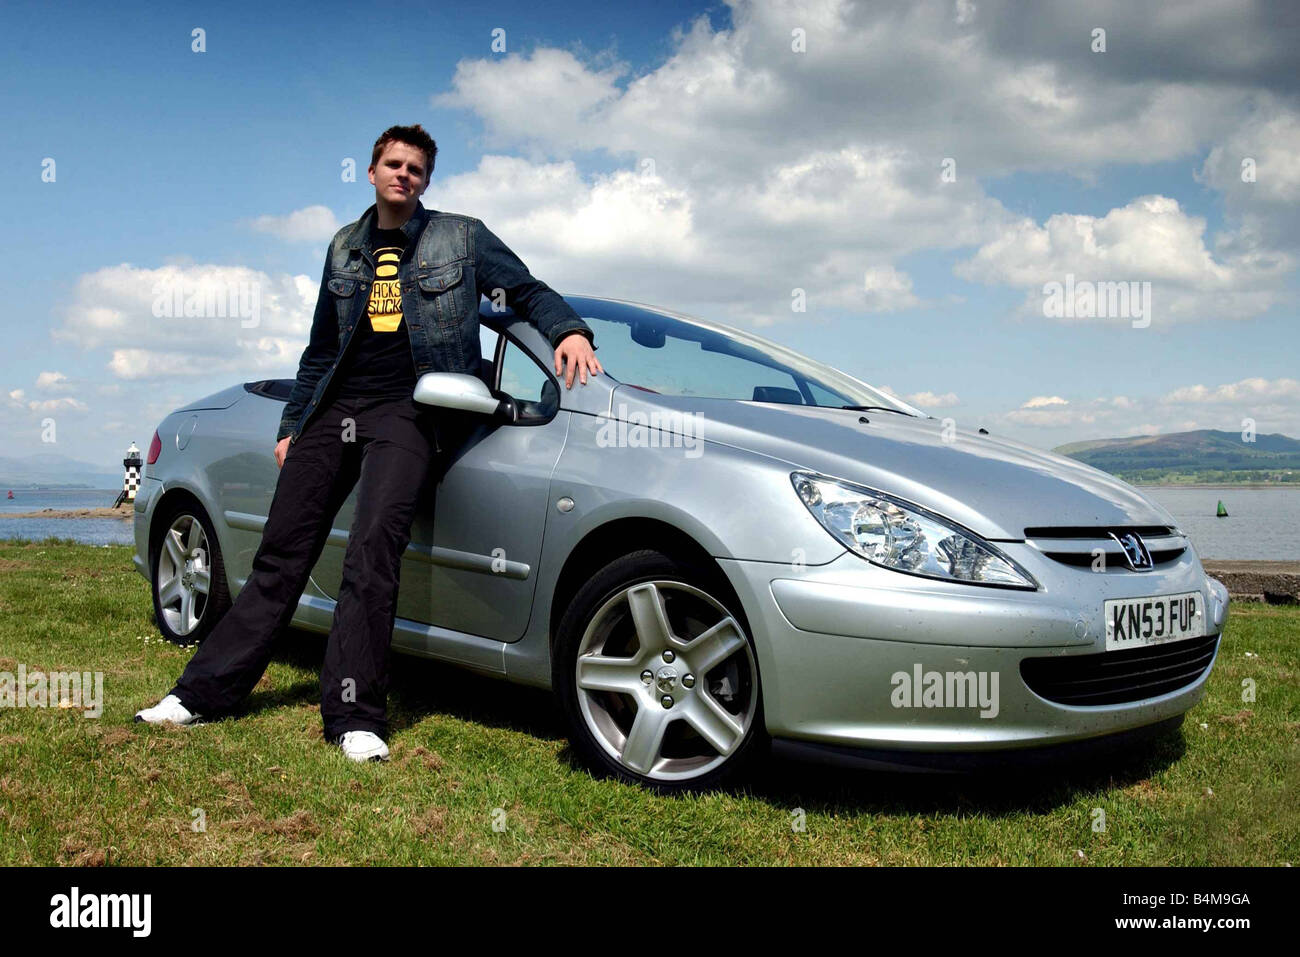 jake humphrey june 2004 bbc childrens tv presenter with a peugoet